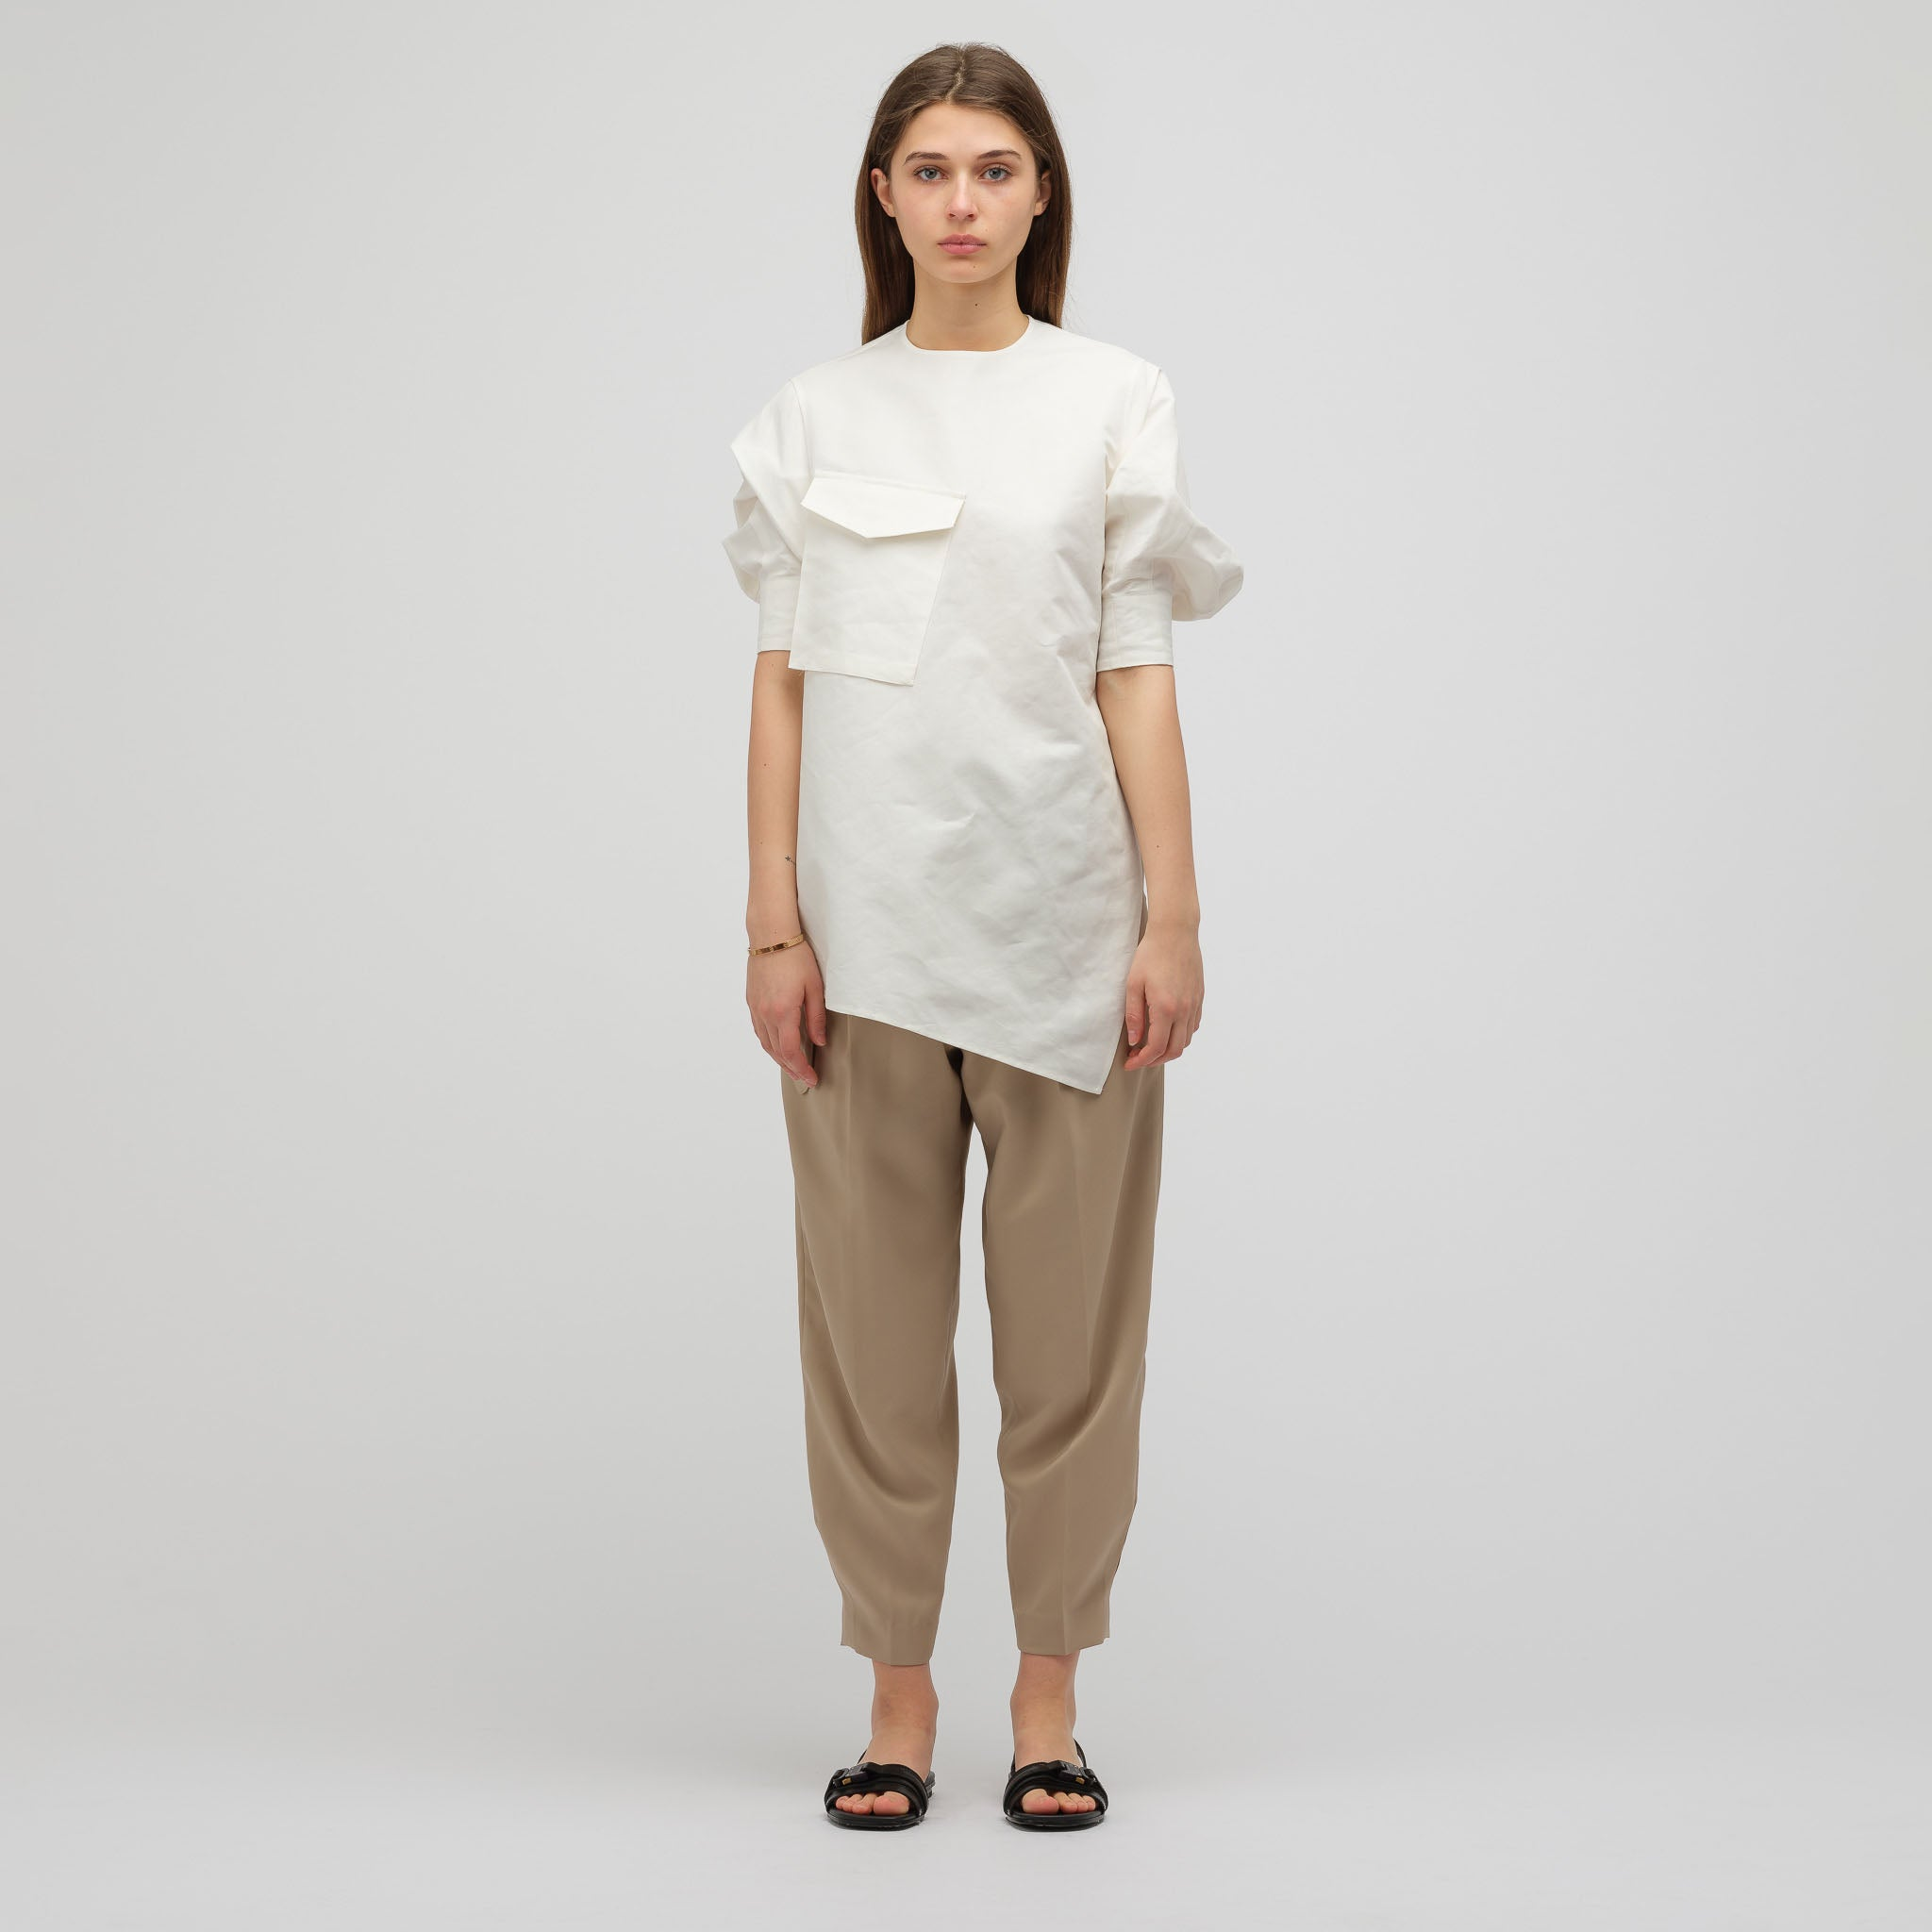 820c27329f8 HYKE Asymmetrically Draped Tunic Shirt in White | Notre